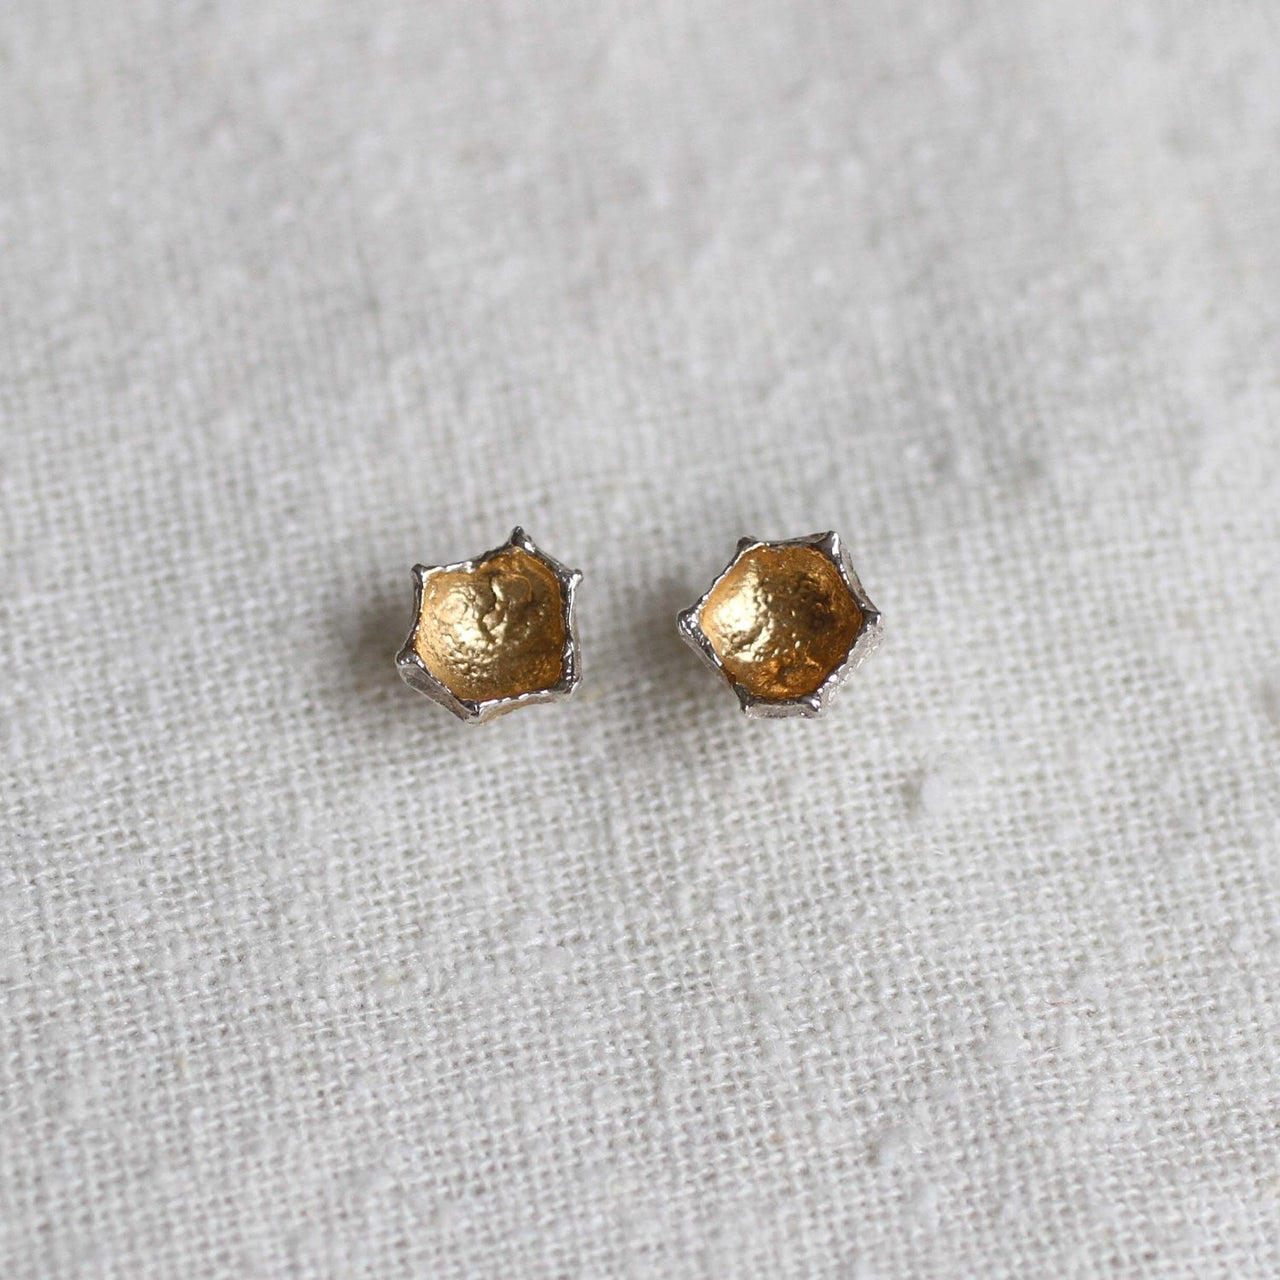 Honeycomb Prism Studs . 14 kt Gold/Silver or Silver